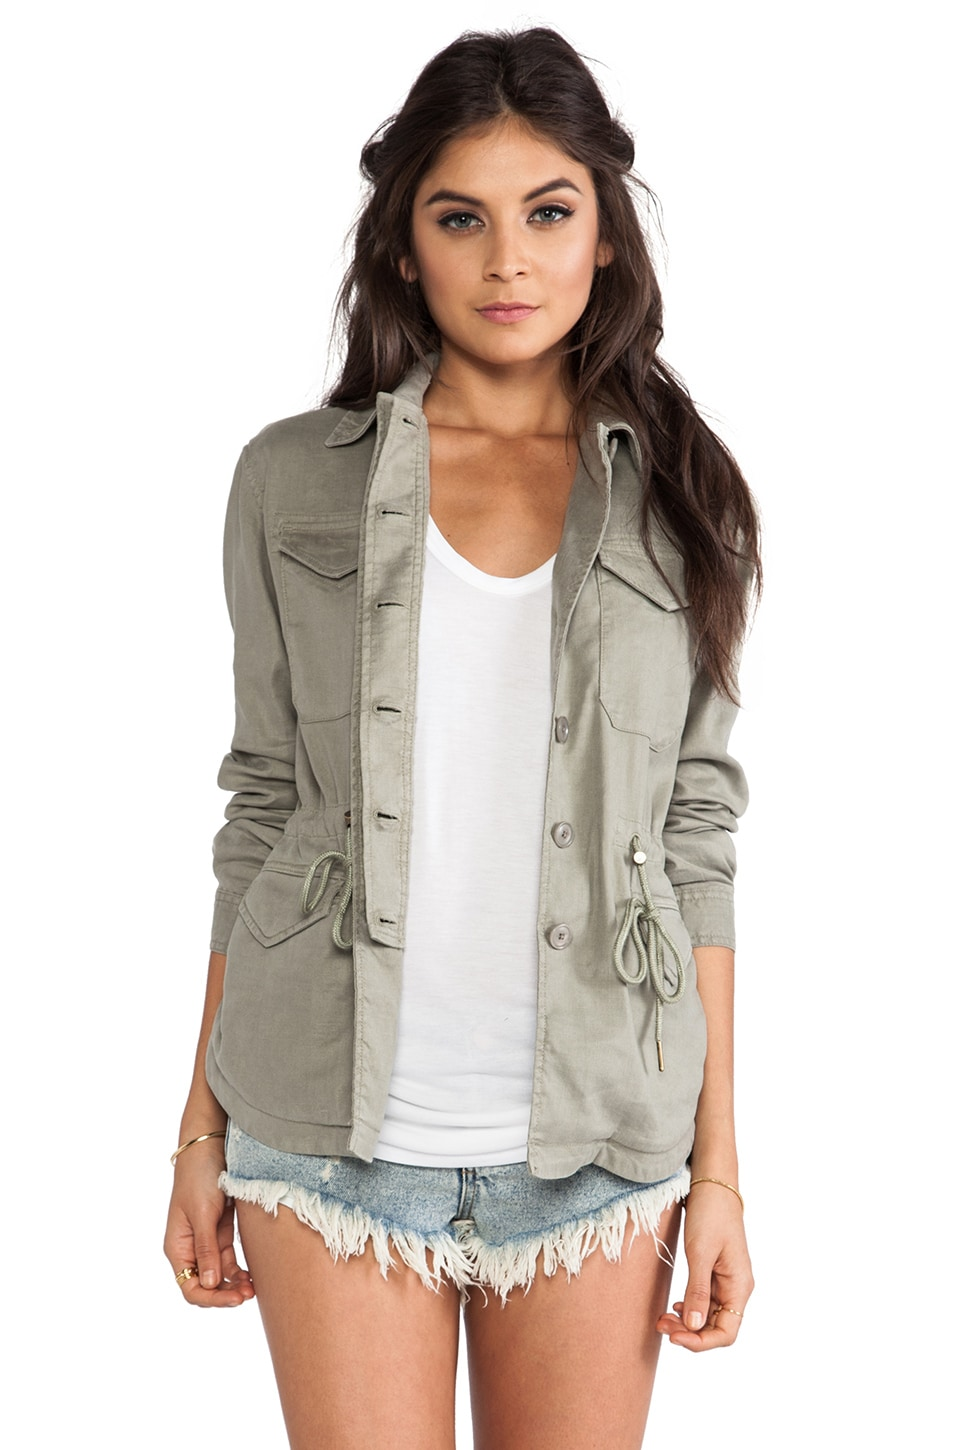 Level 99 Cargo Jacket in Combat Green